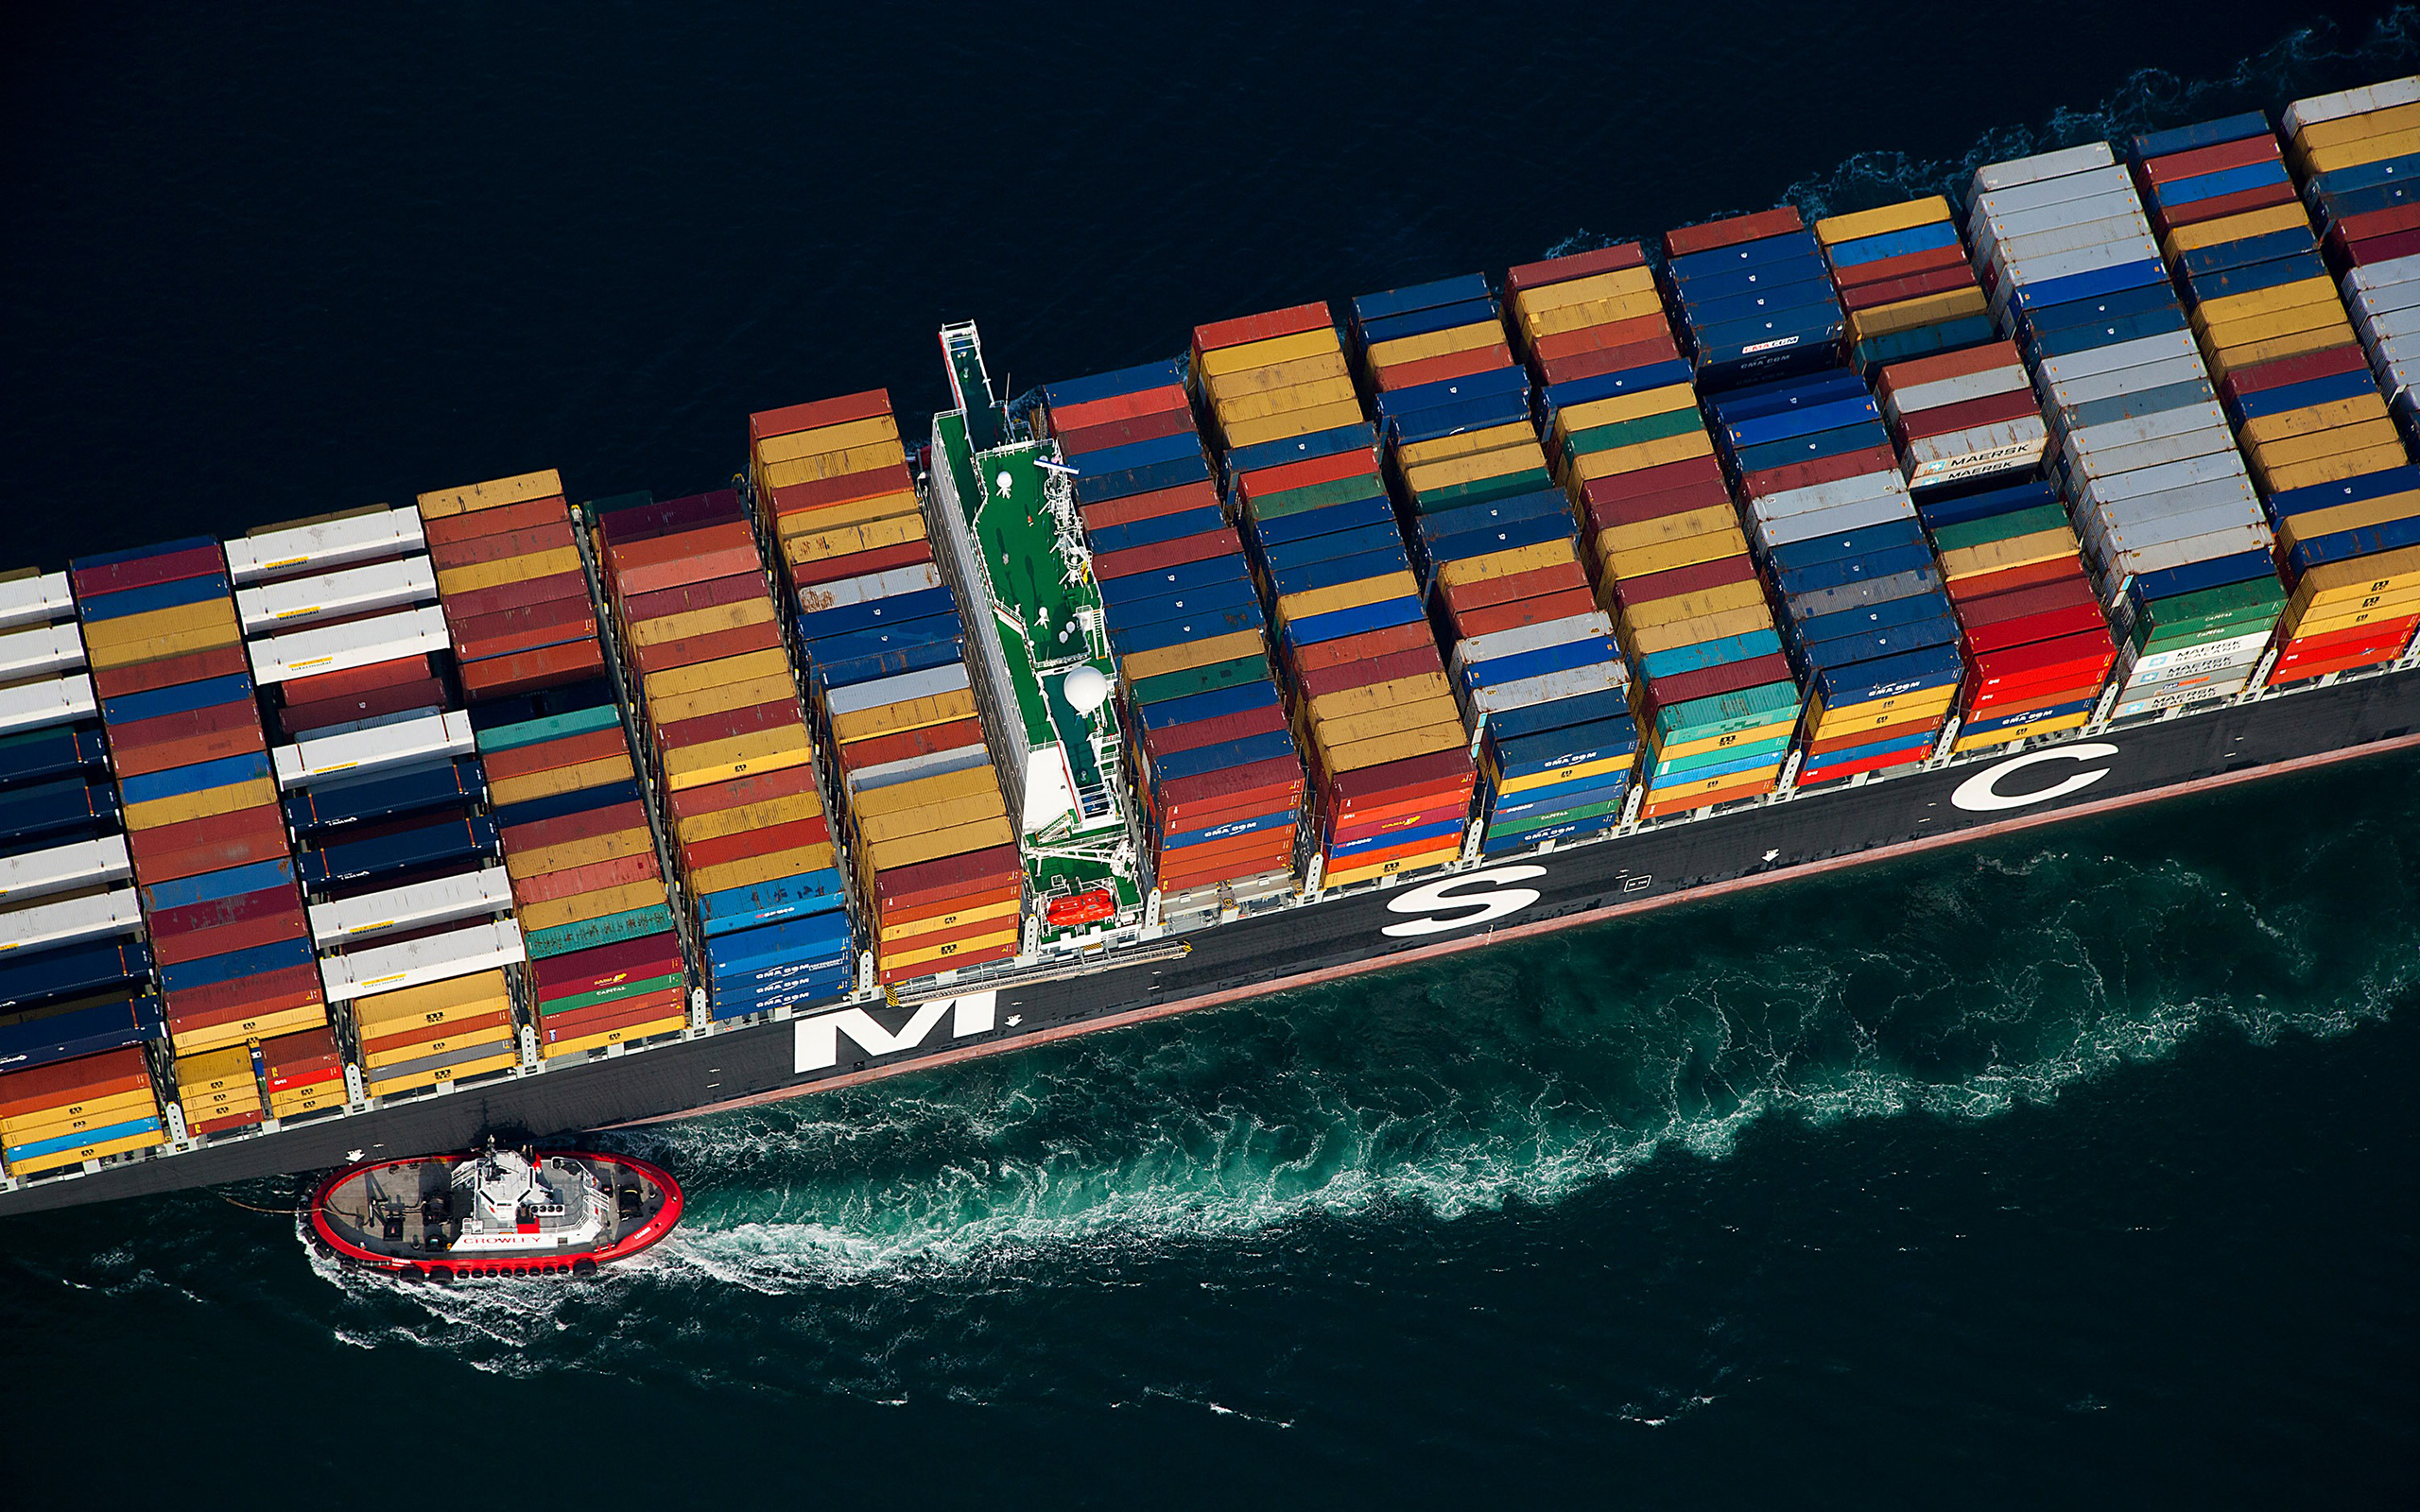 A tugboat guides a ship loaded with freight containers near the Port of Long Beach, Calif.